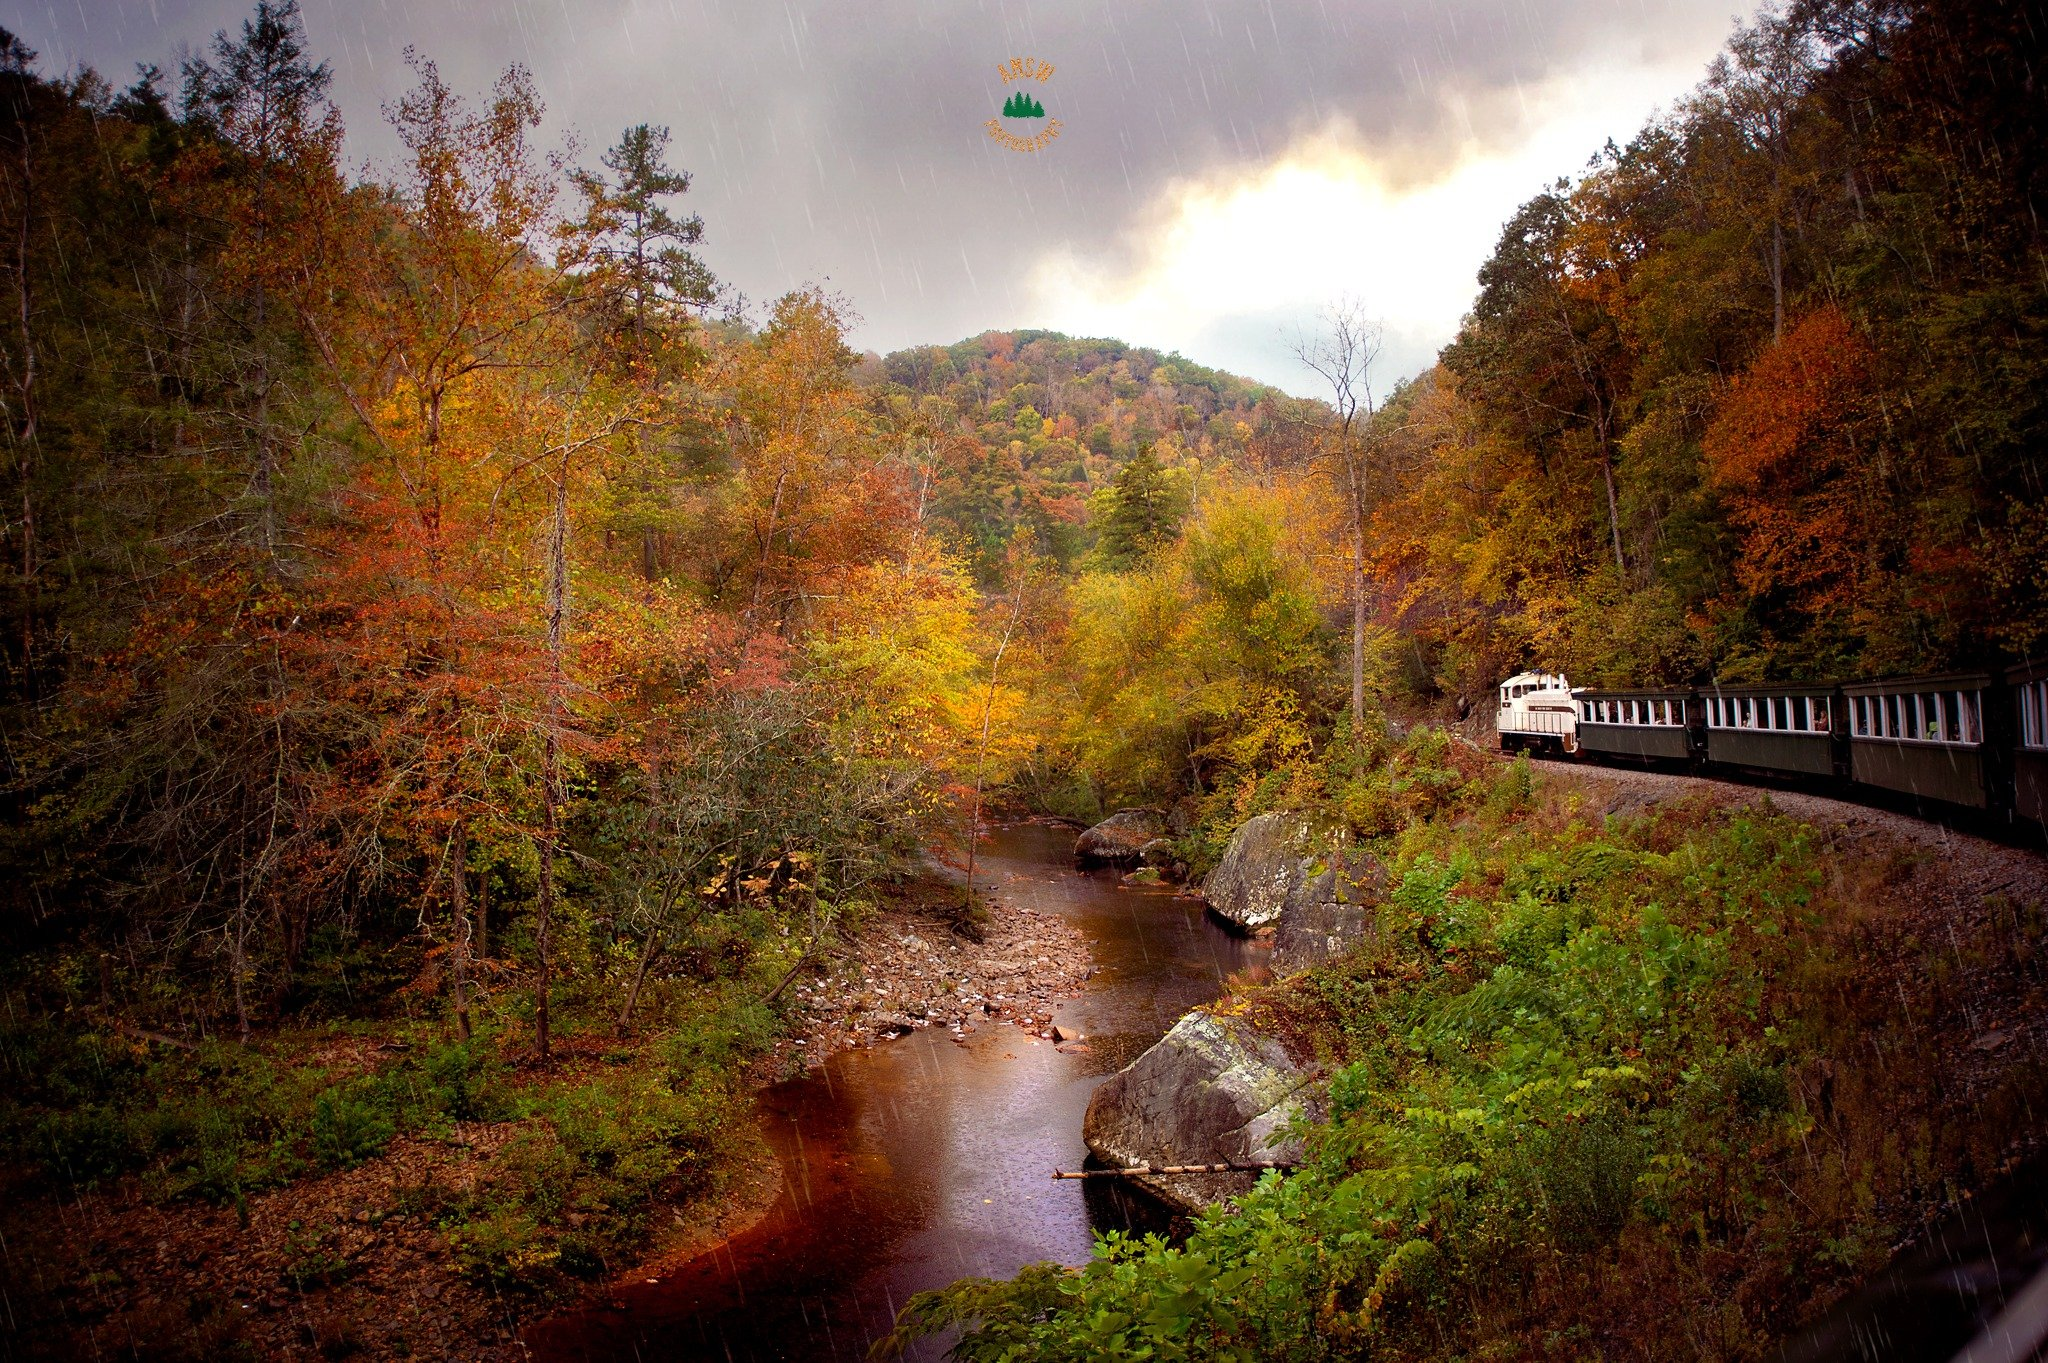 Big South Fork Railroad through the Appalachians in the fall color